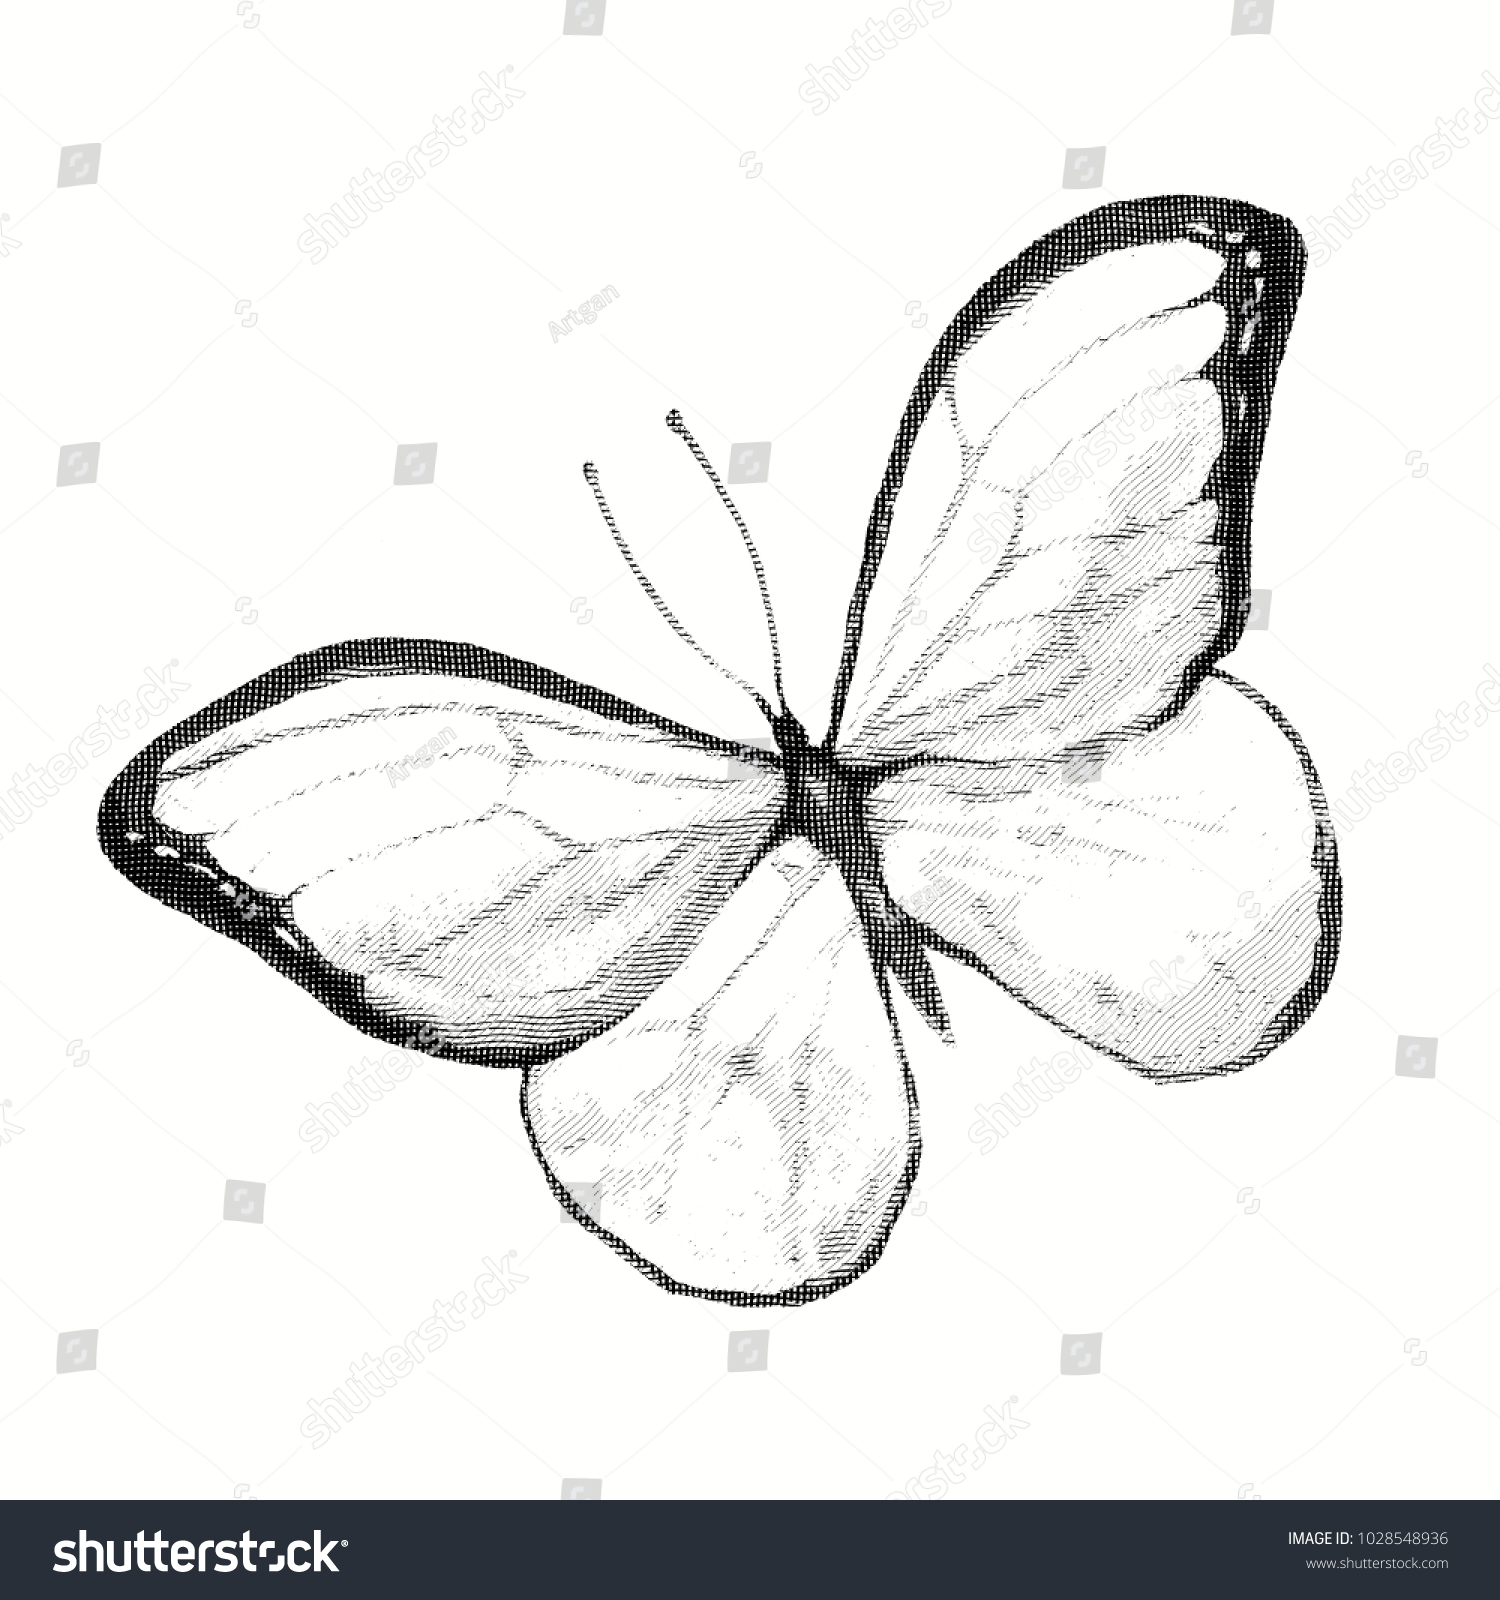 Engraving a butterfly pencil drawing of an insect isolated illustration of an animal in